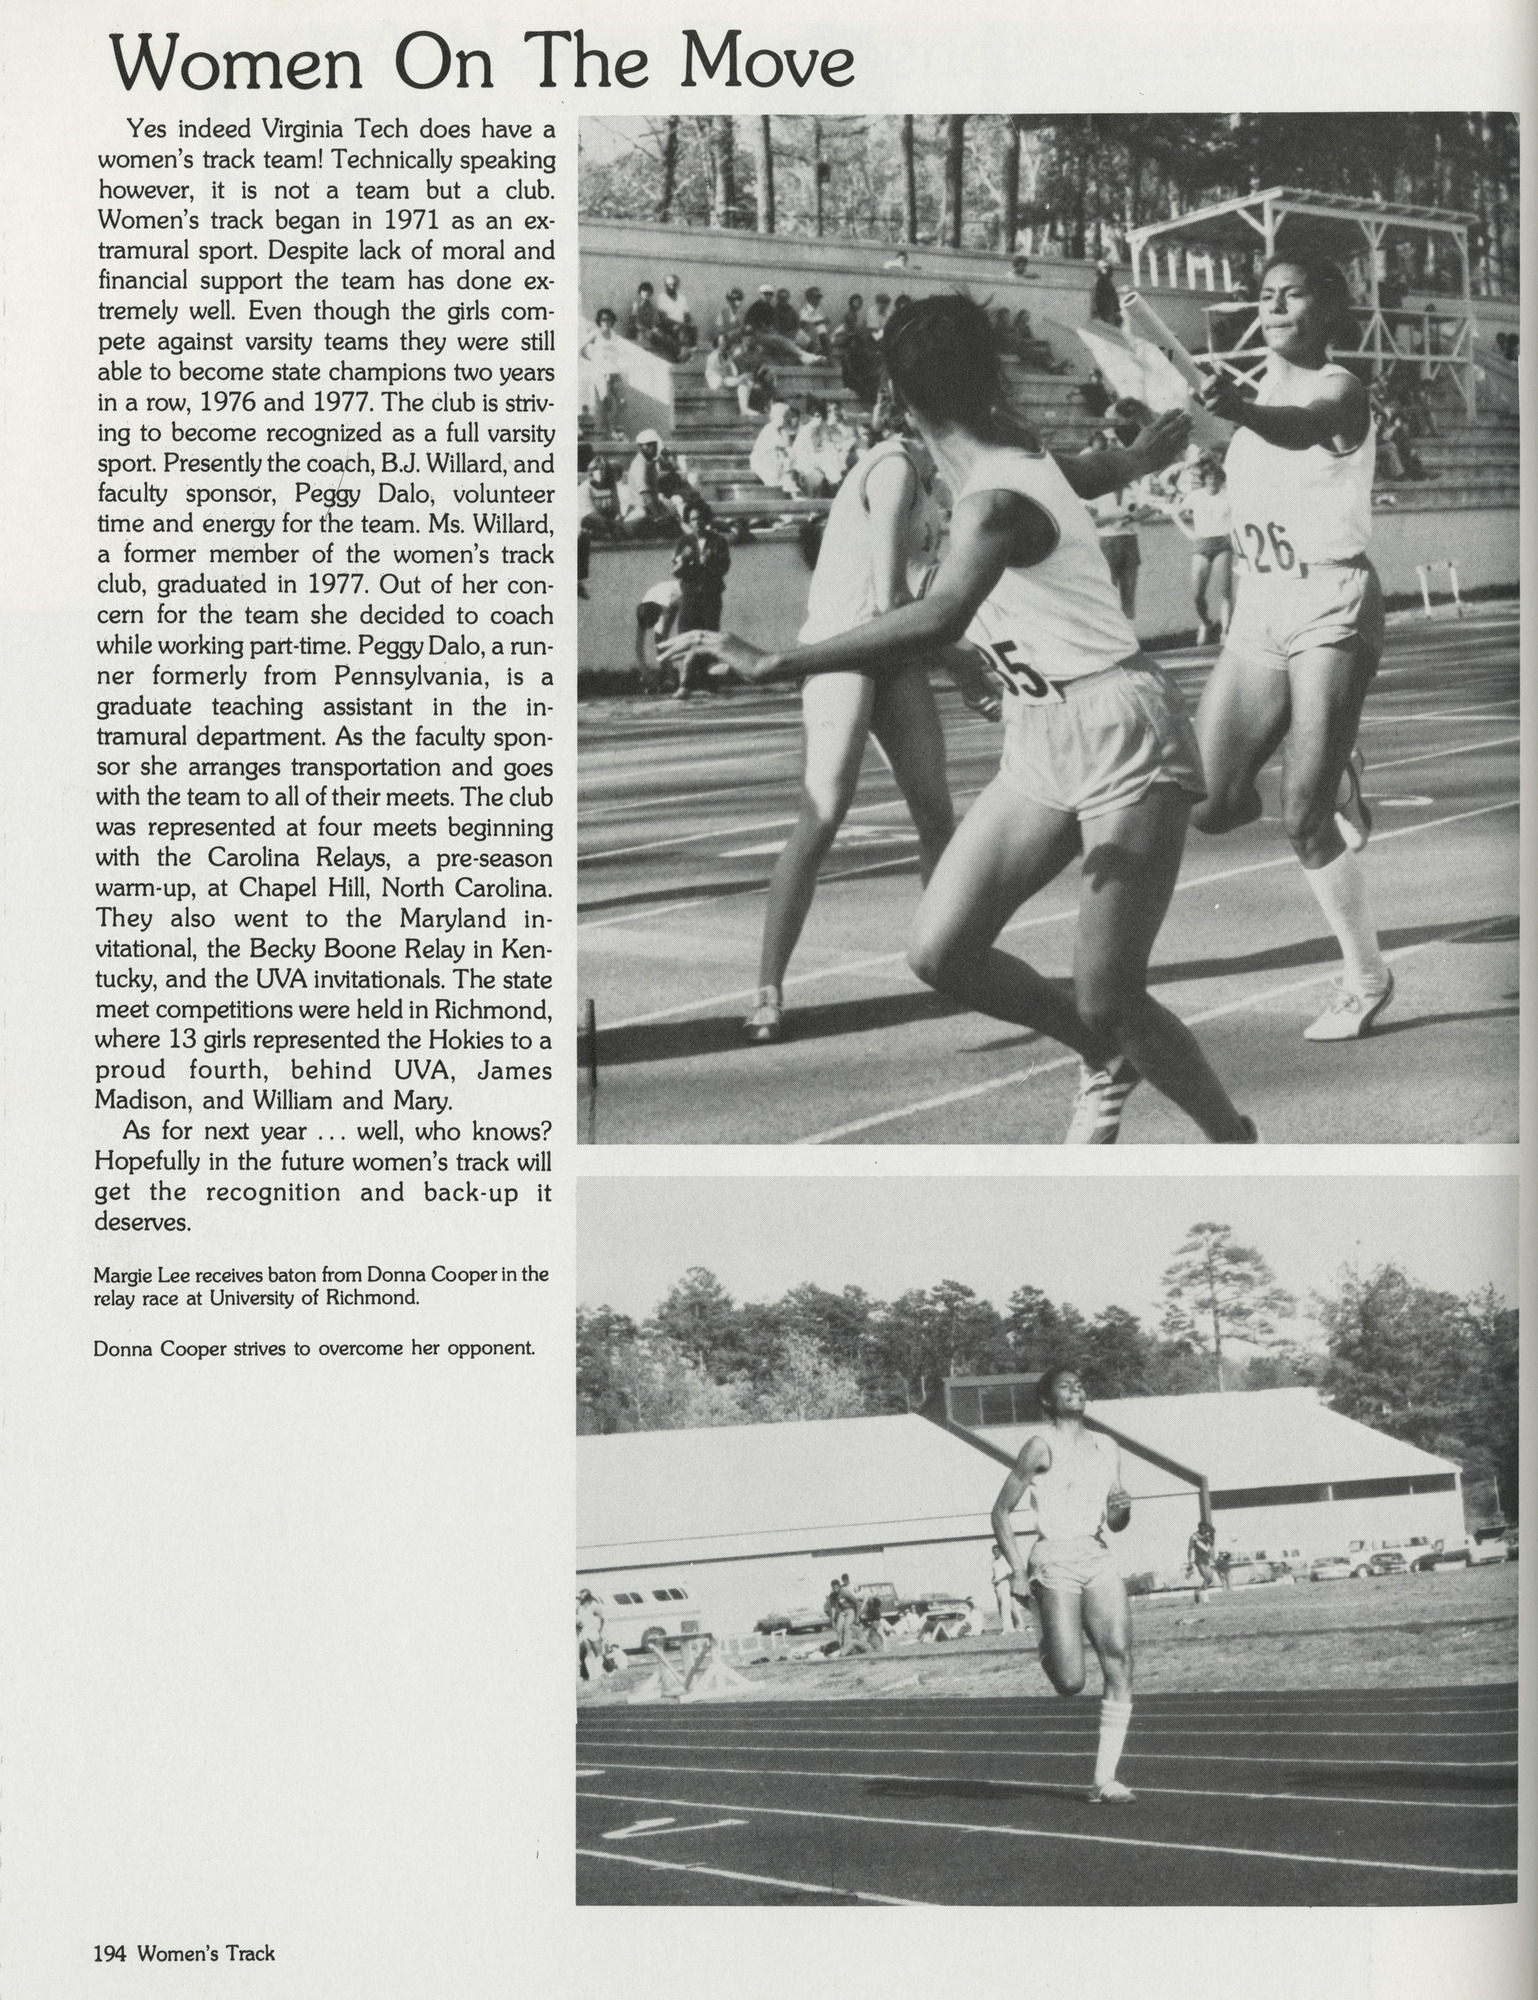 http://spec.lib.vt.edu/pickup/Omeka_upload/Bugle1980_pg194_WomensTrack.jpg